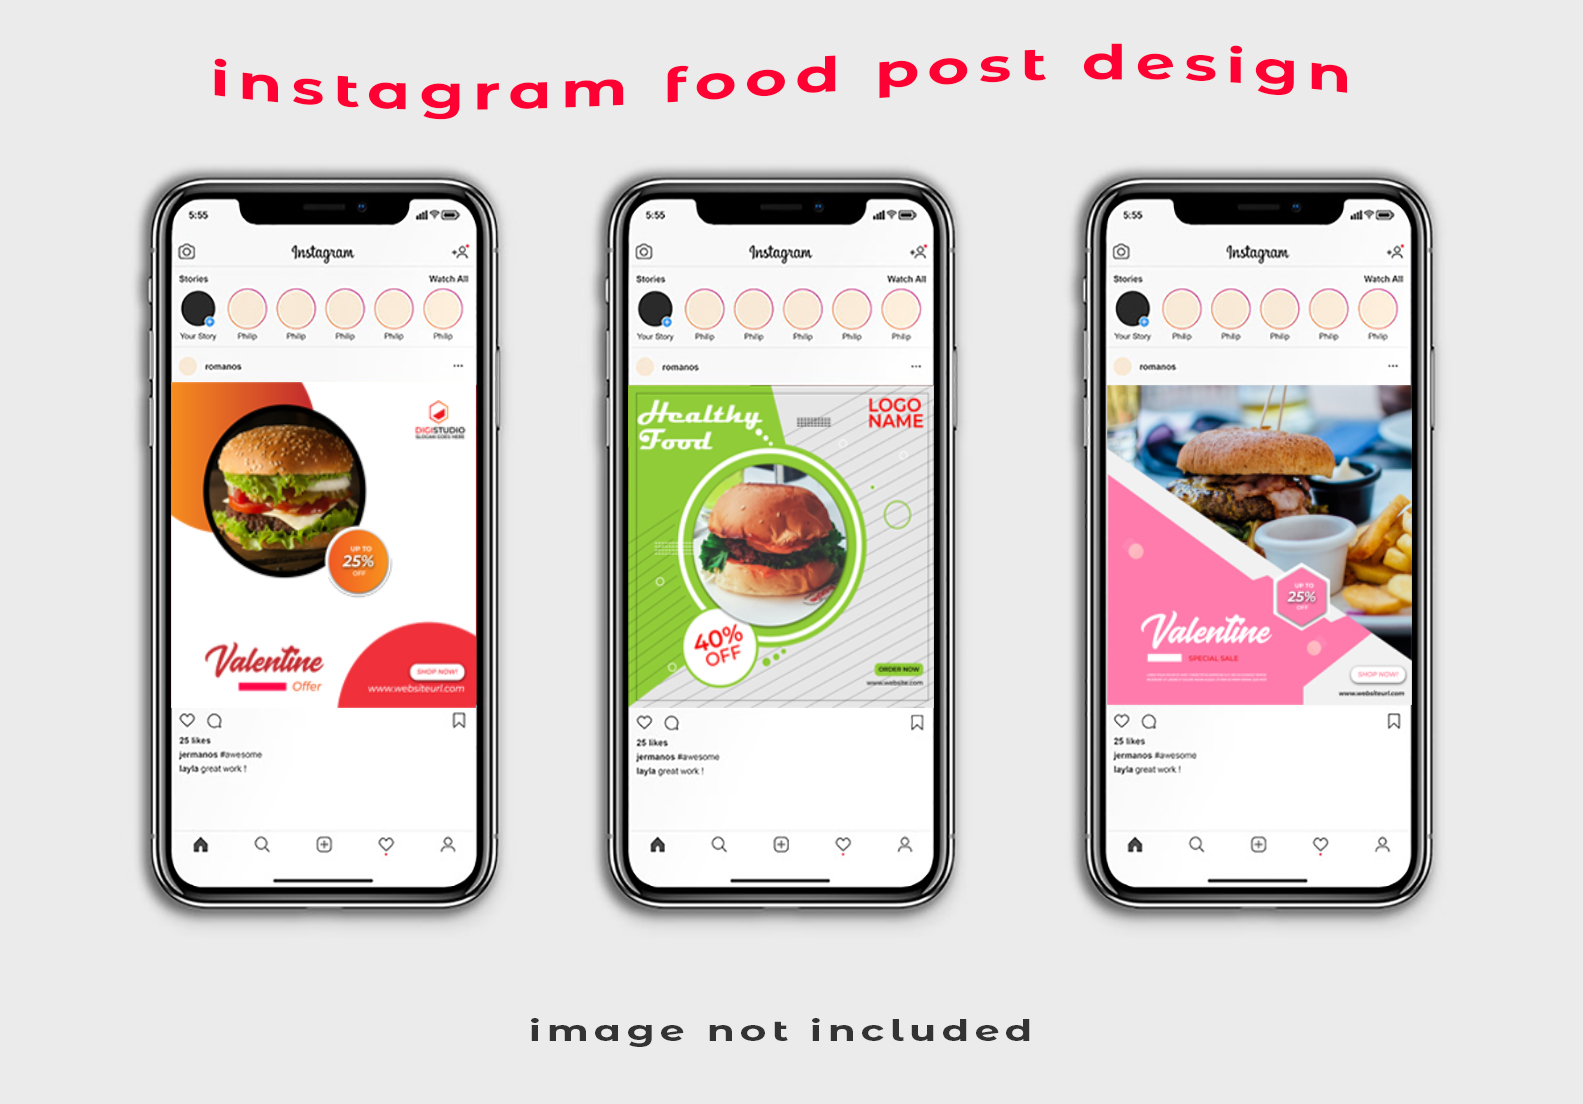 I will design professional Instagram food post design